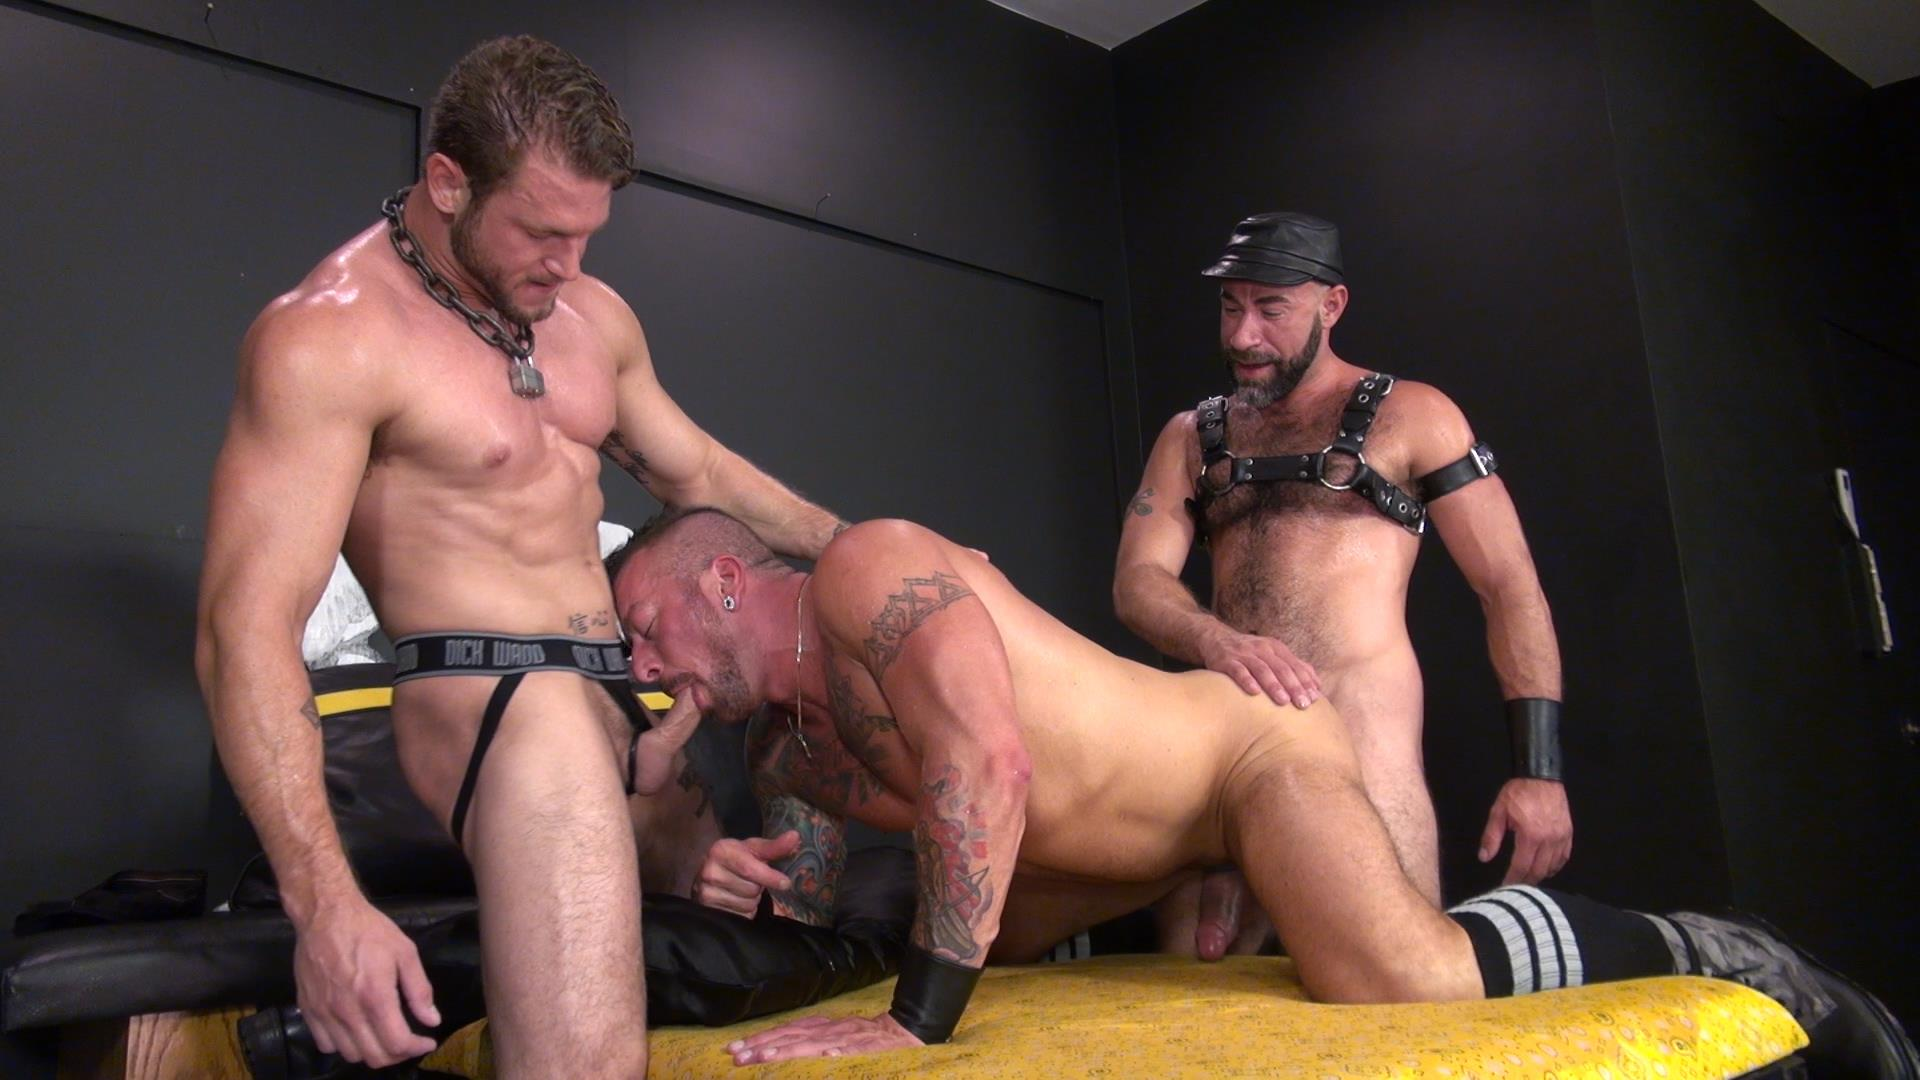 Raw and Rough Boy Fillmore Dolf Dietrich Damon Andros Hugh Hunter Ace Era Free Gay Porn 03 Bareback Fuck And Piss Party At An Underground Sex Club